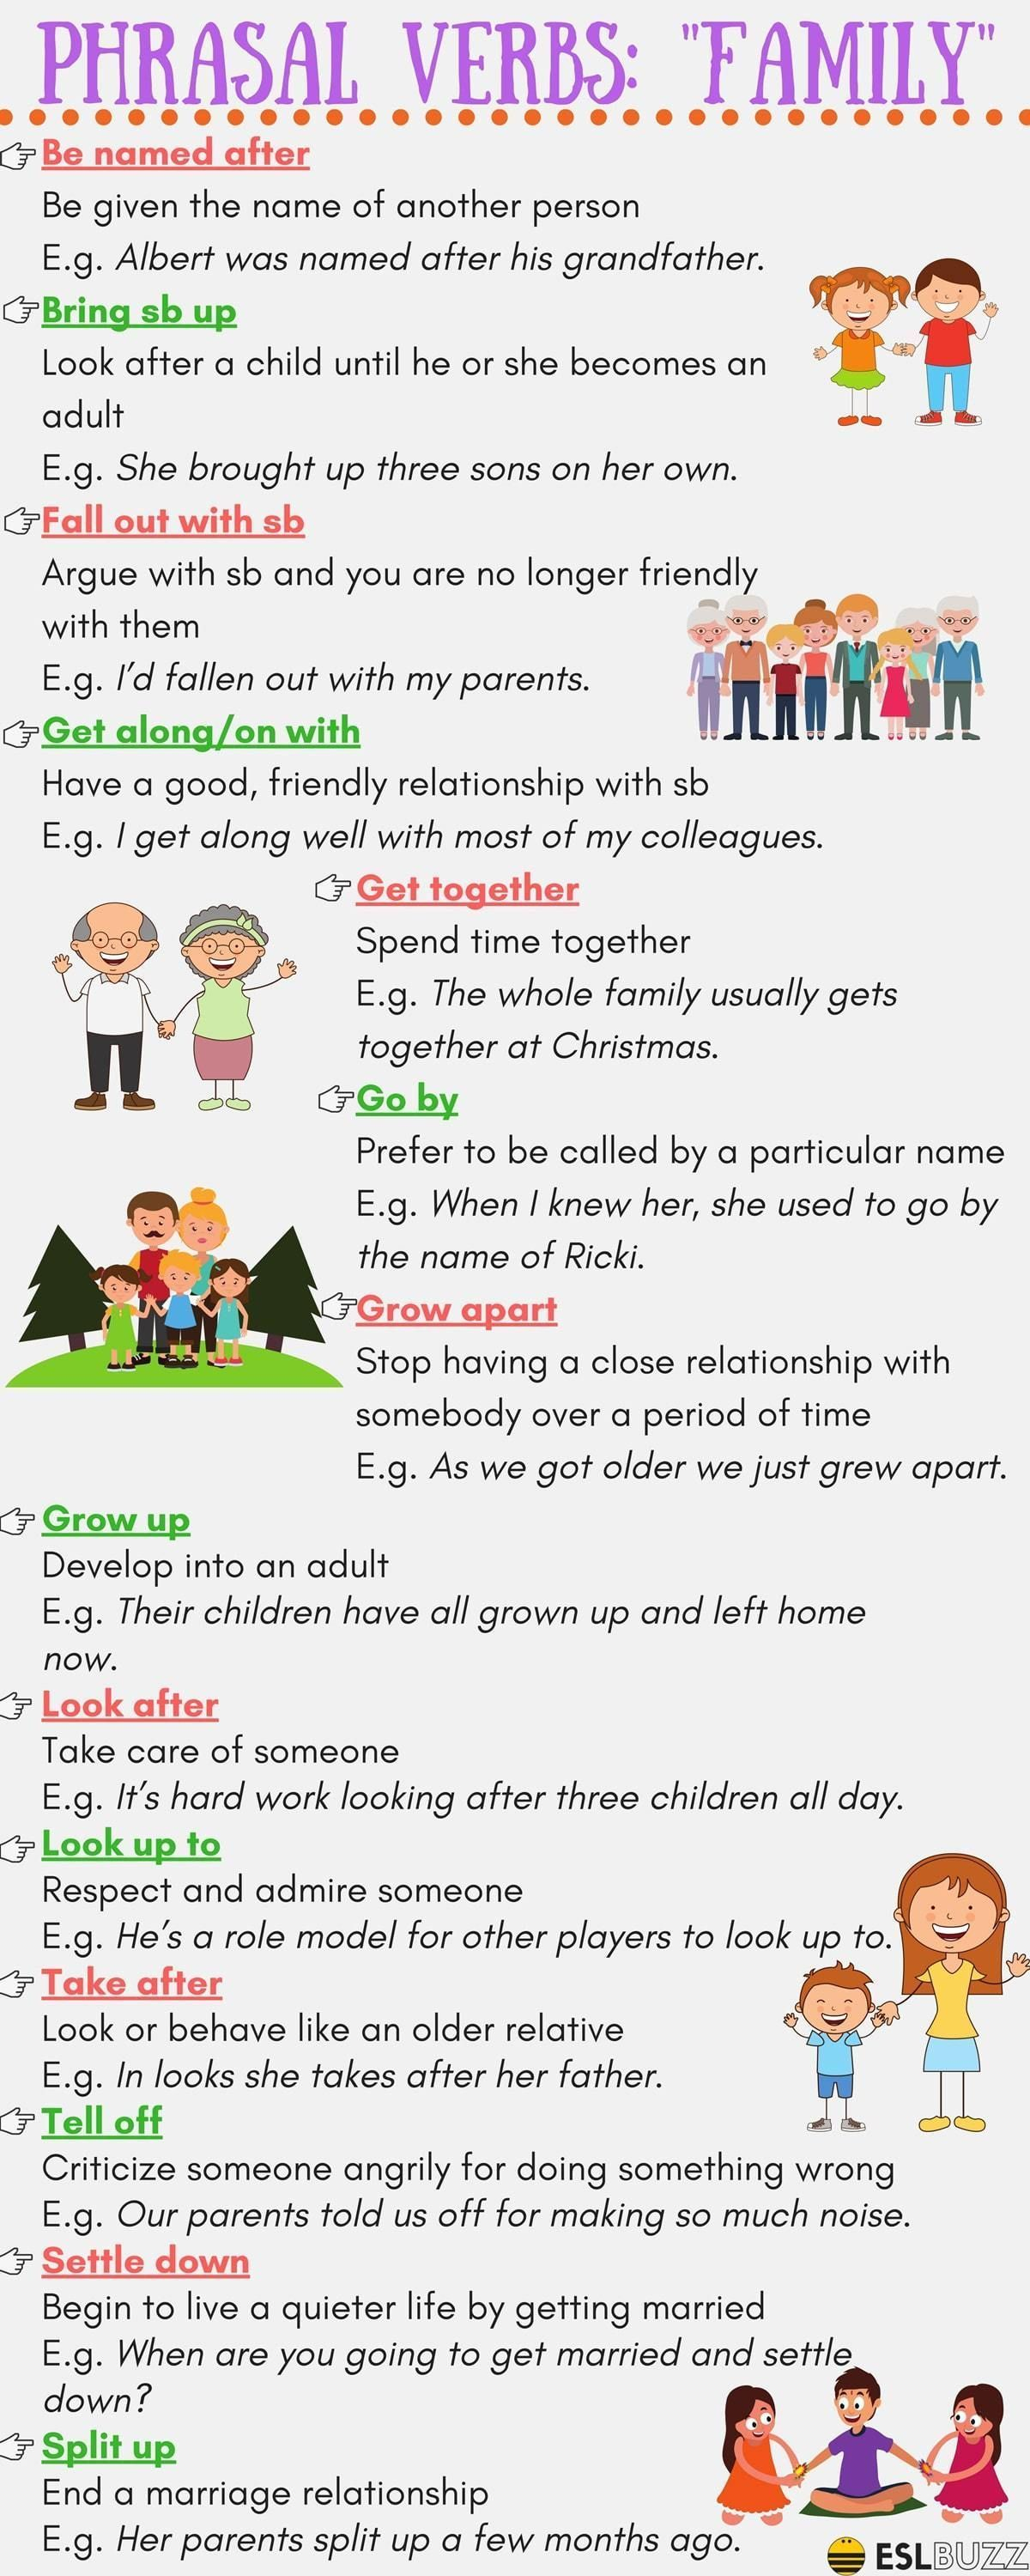 Useful Phrasal Verbs Related To Family Life